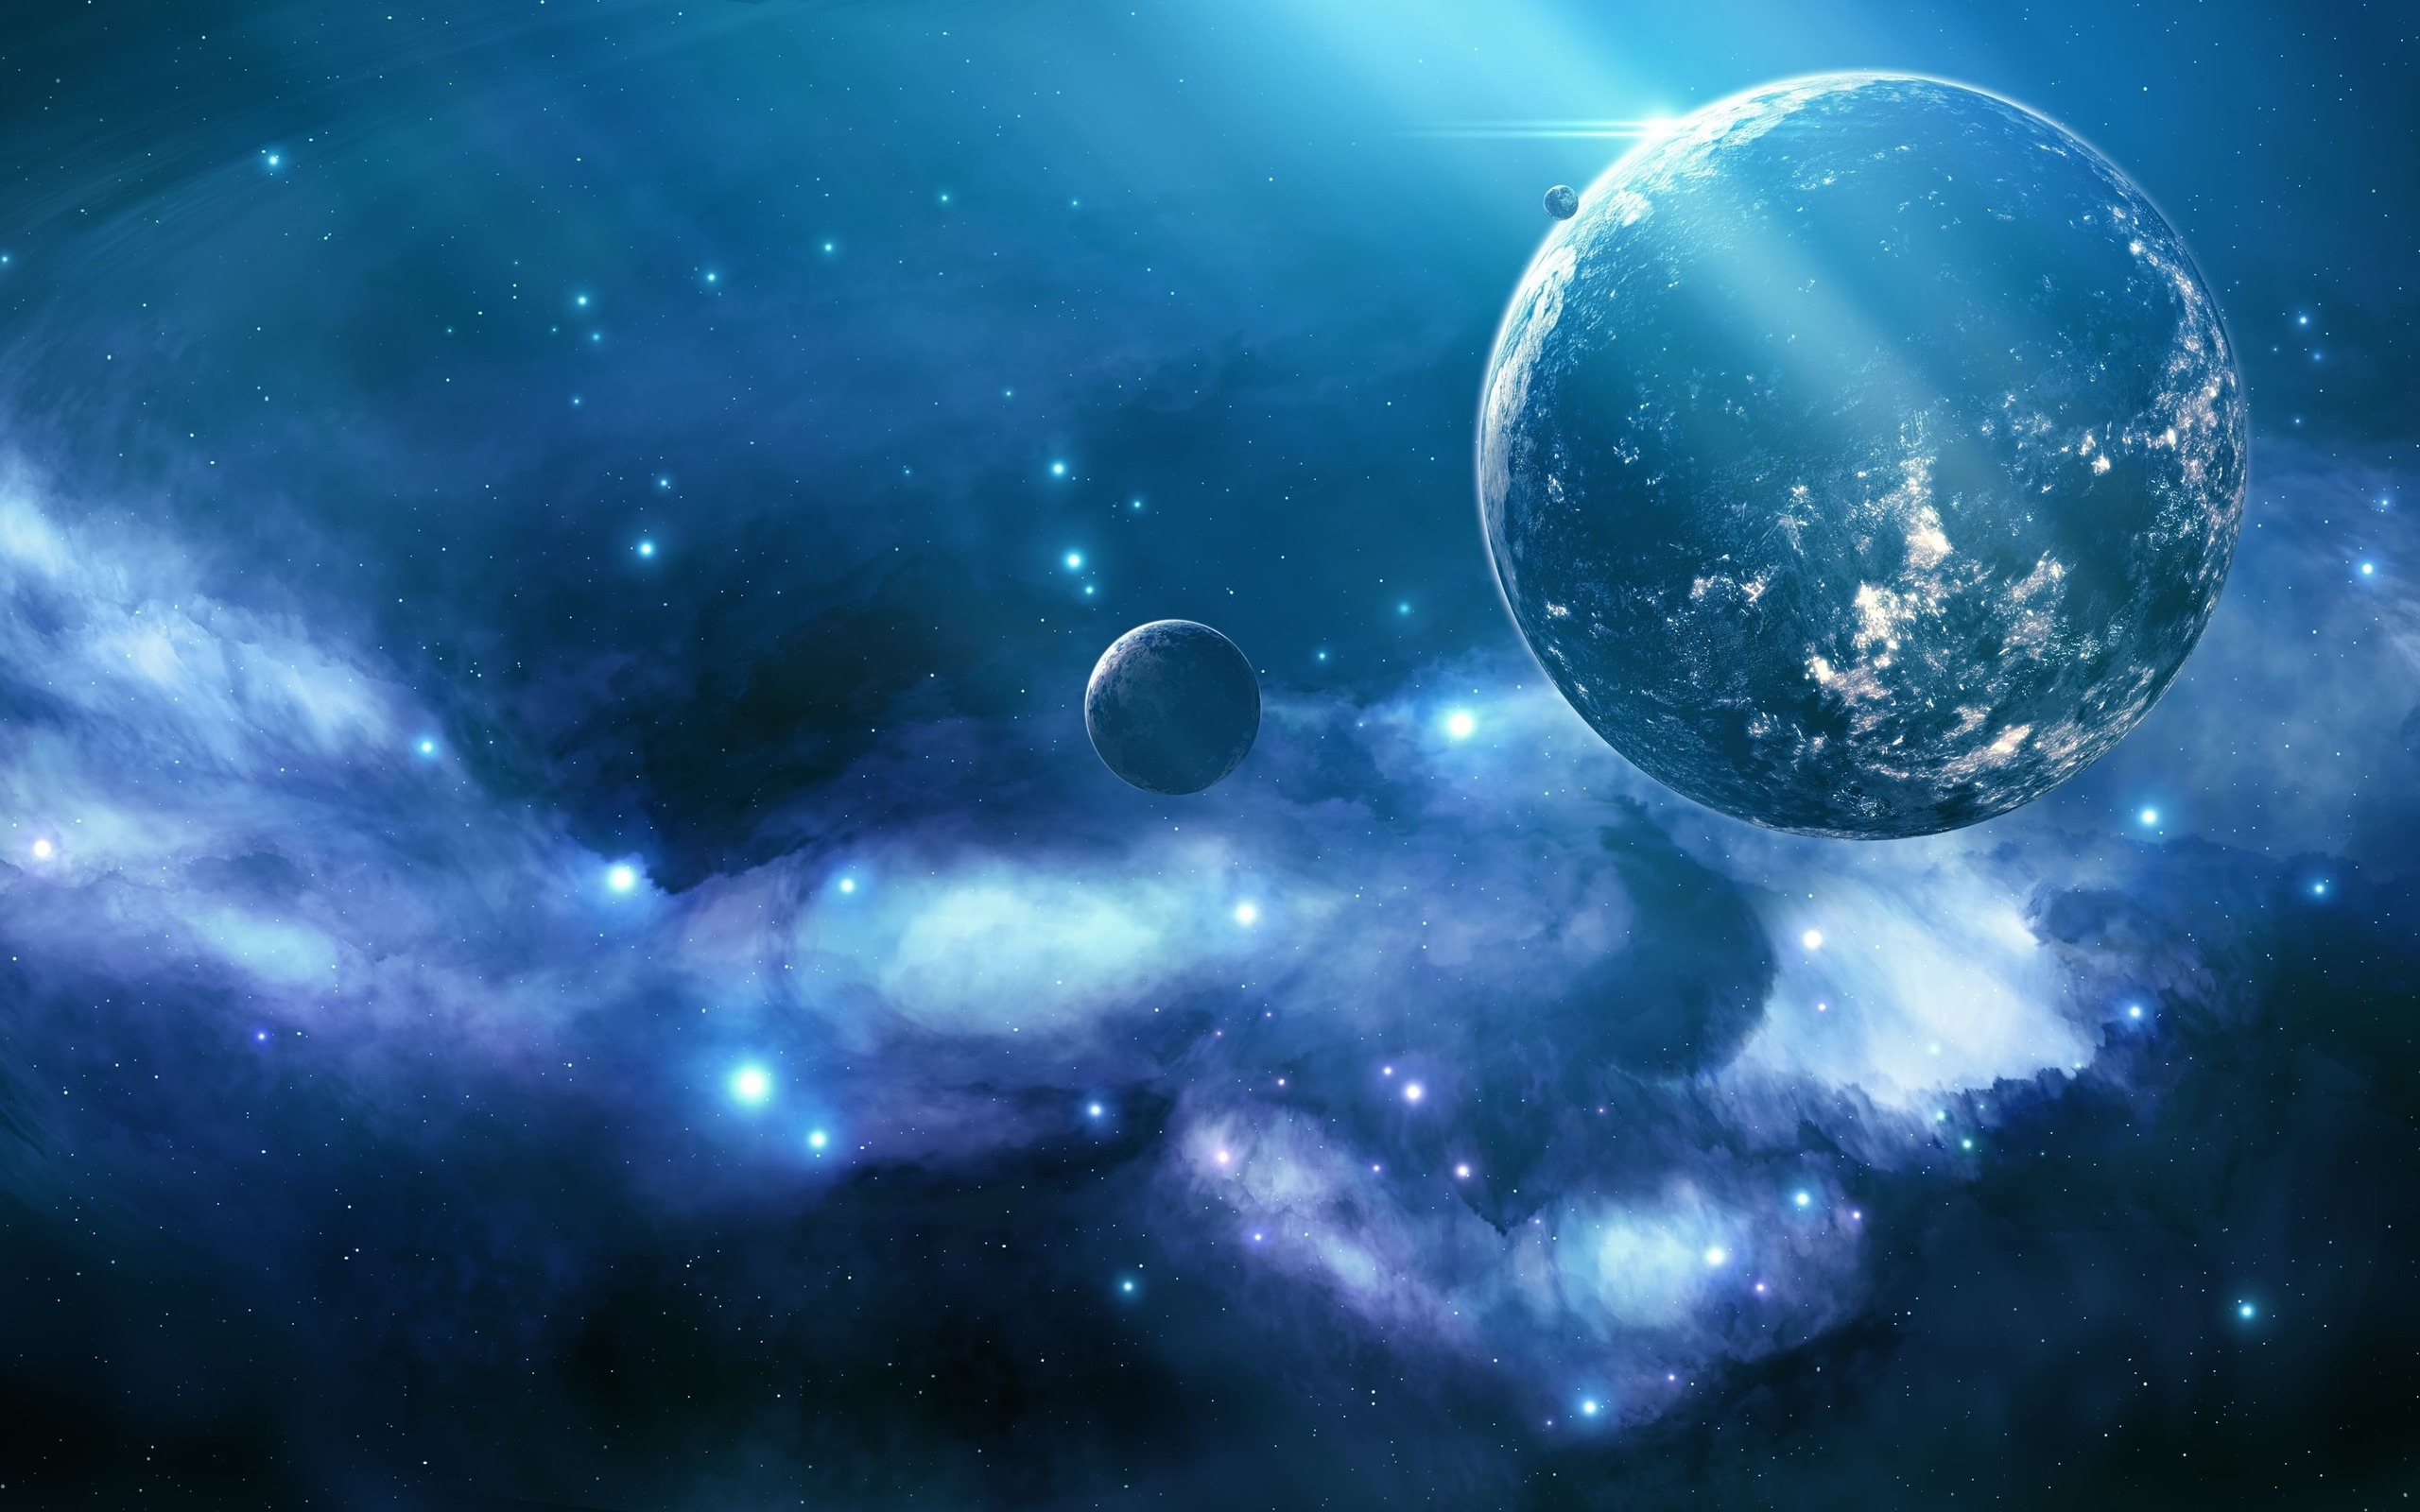 universe-backgrounds-51